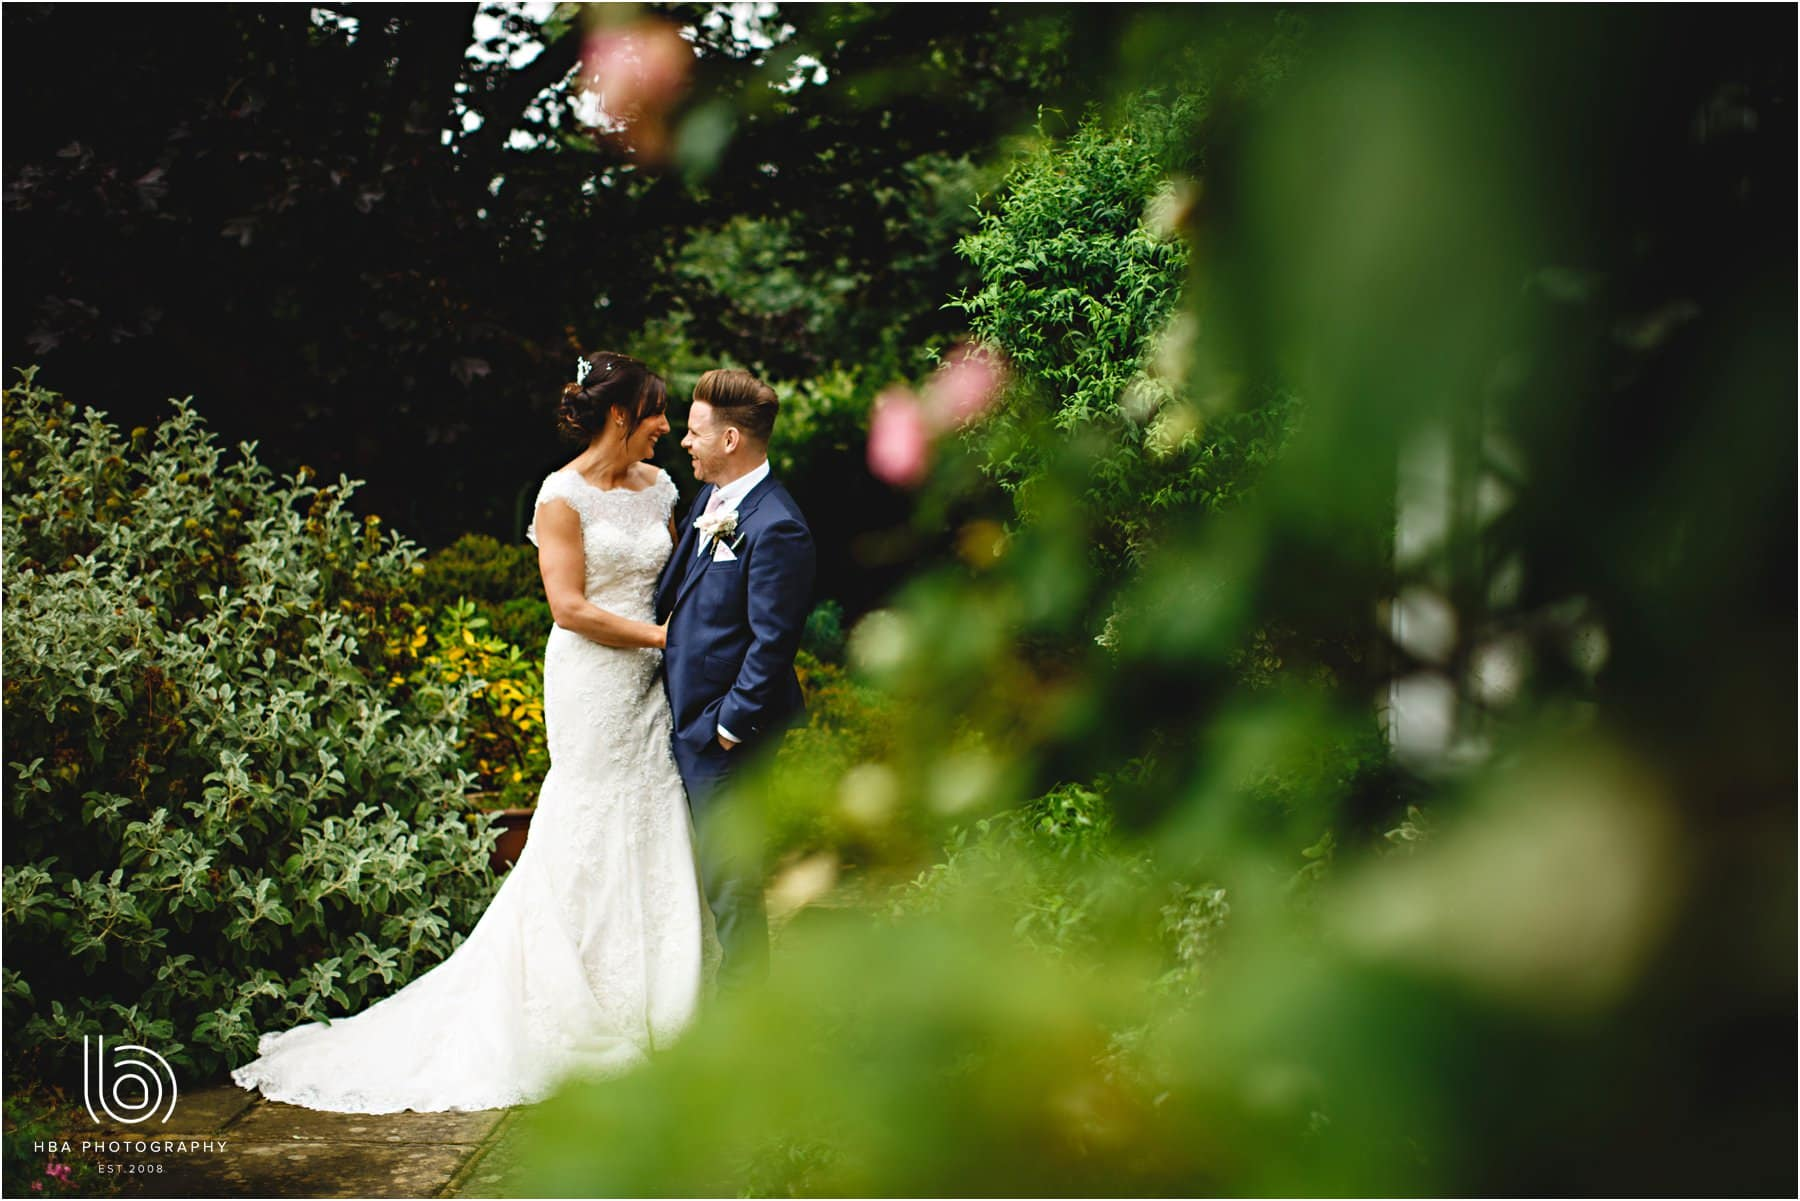 the bride and groom in the gardens